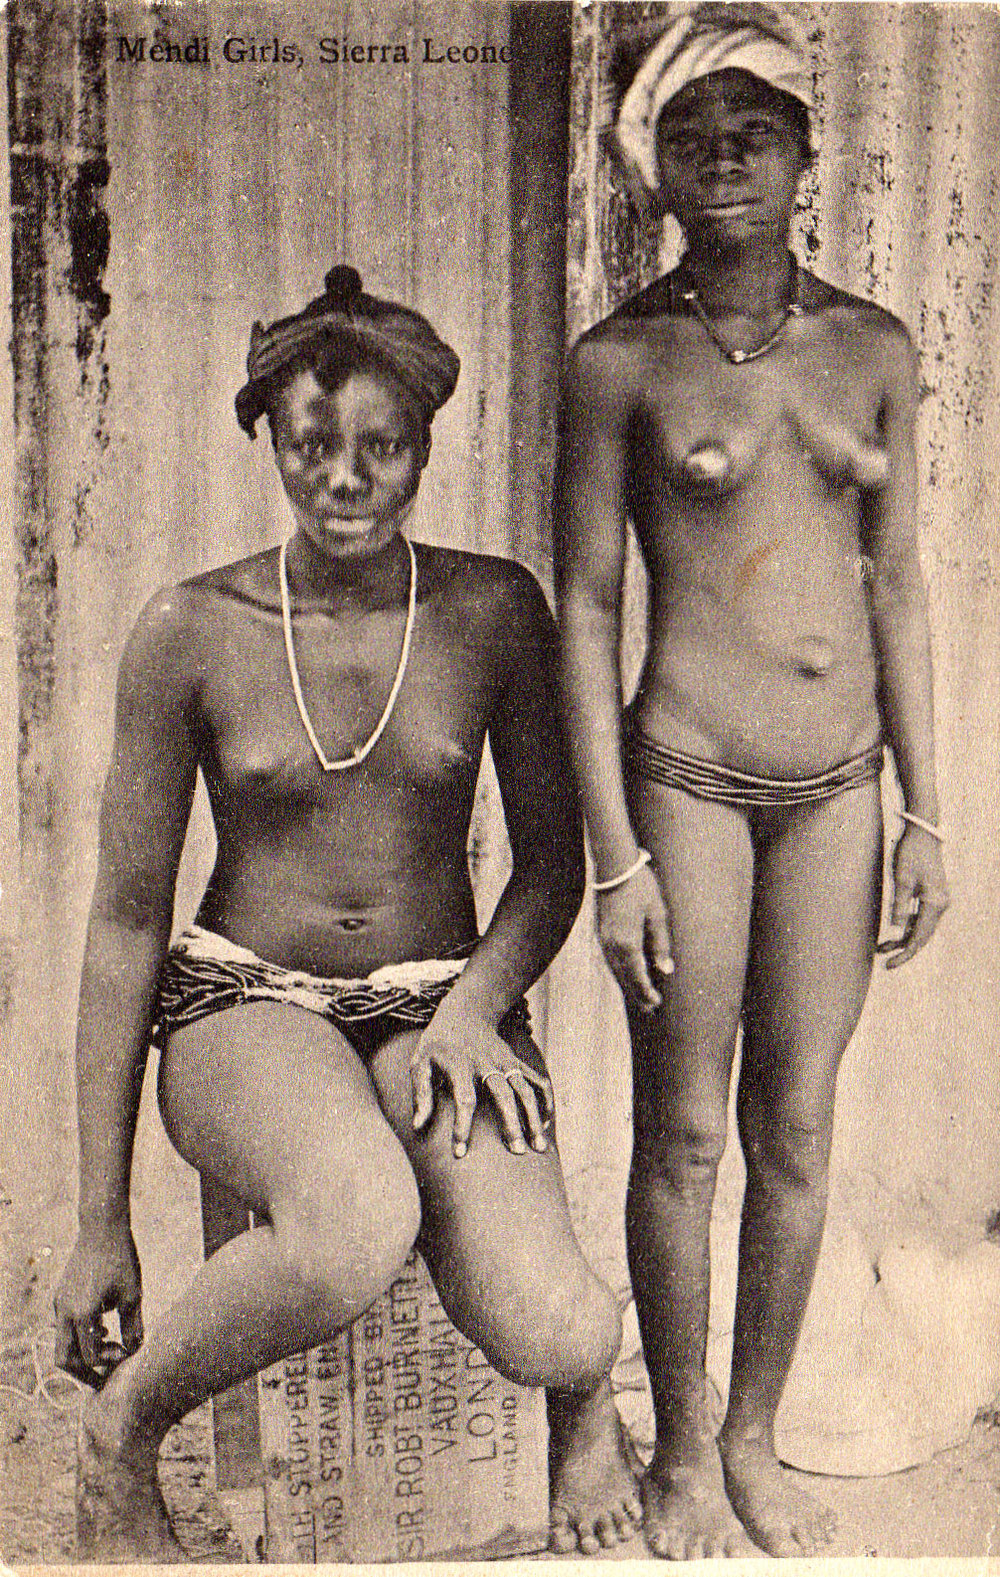 Mendi girls in Sierra Leone.